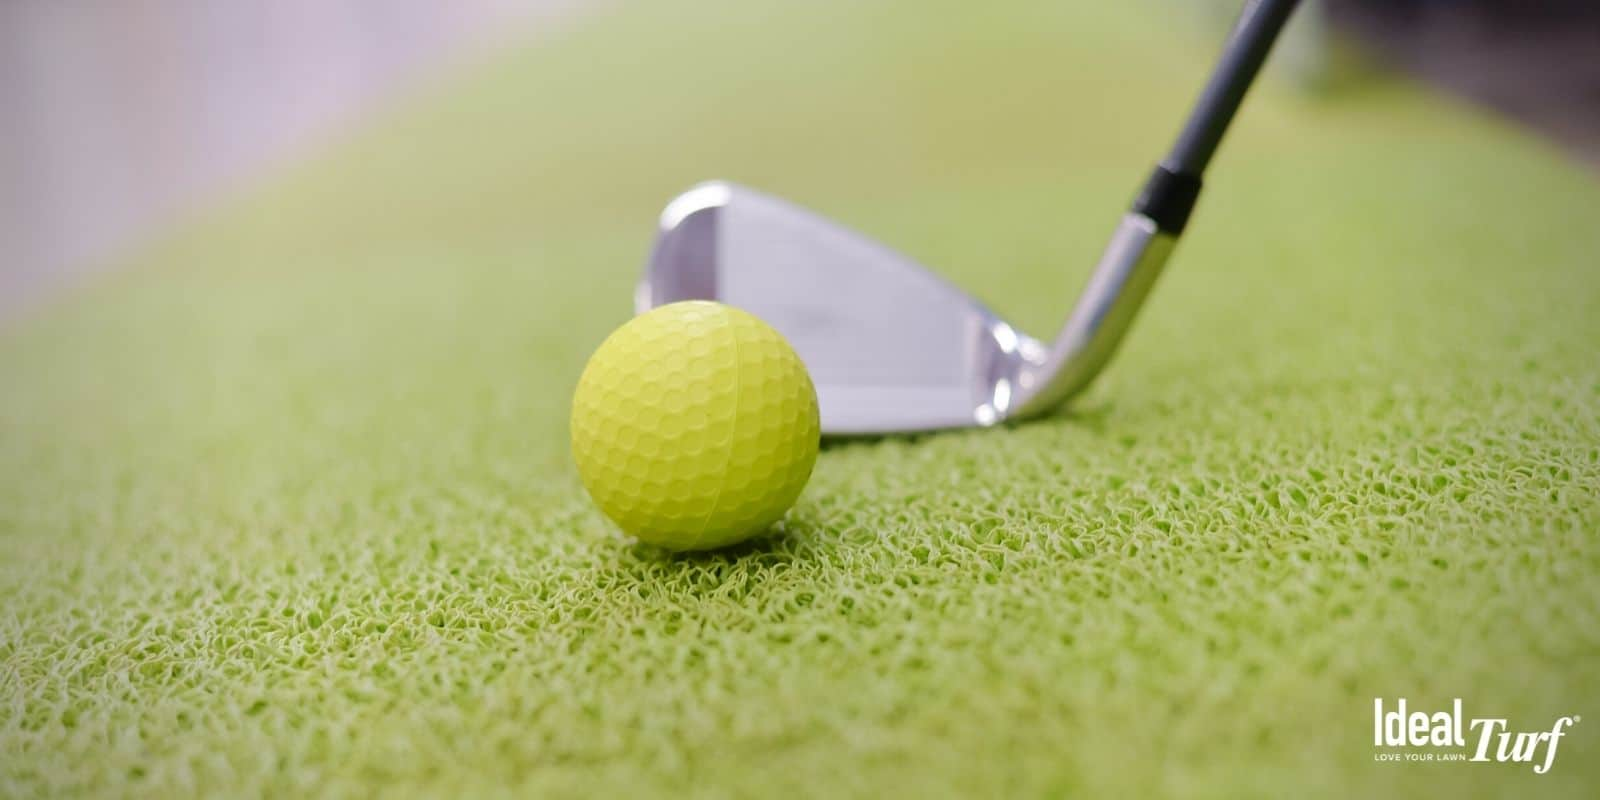 Golf ball sitting on an indoor artificial turf putting green